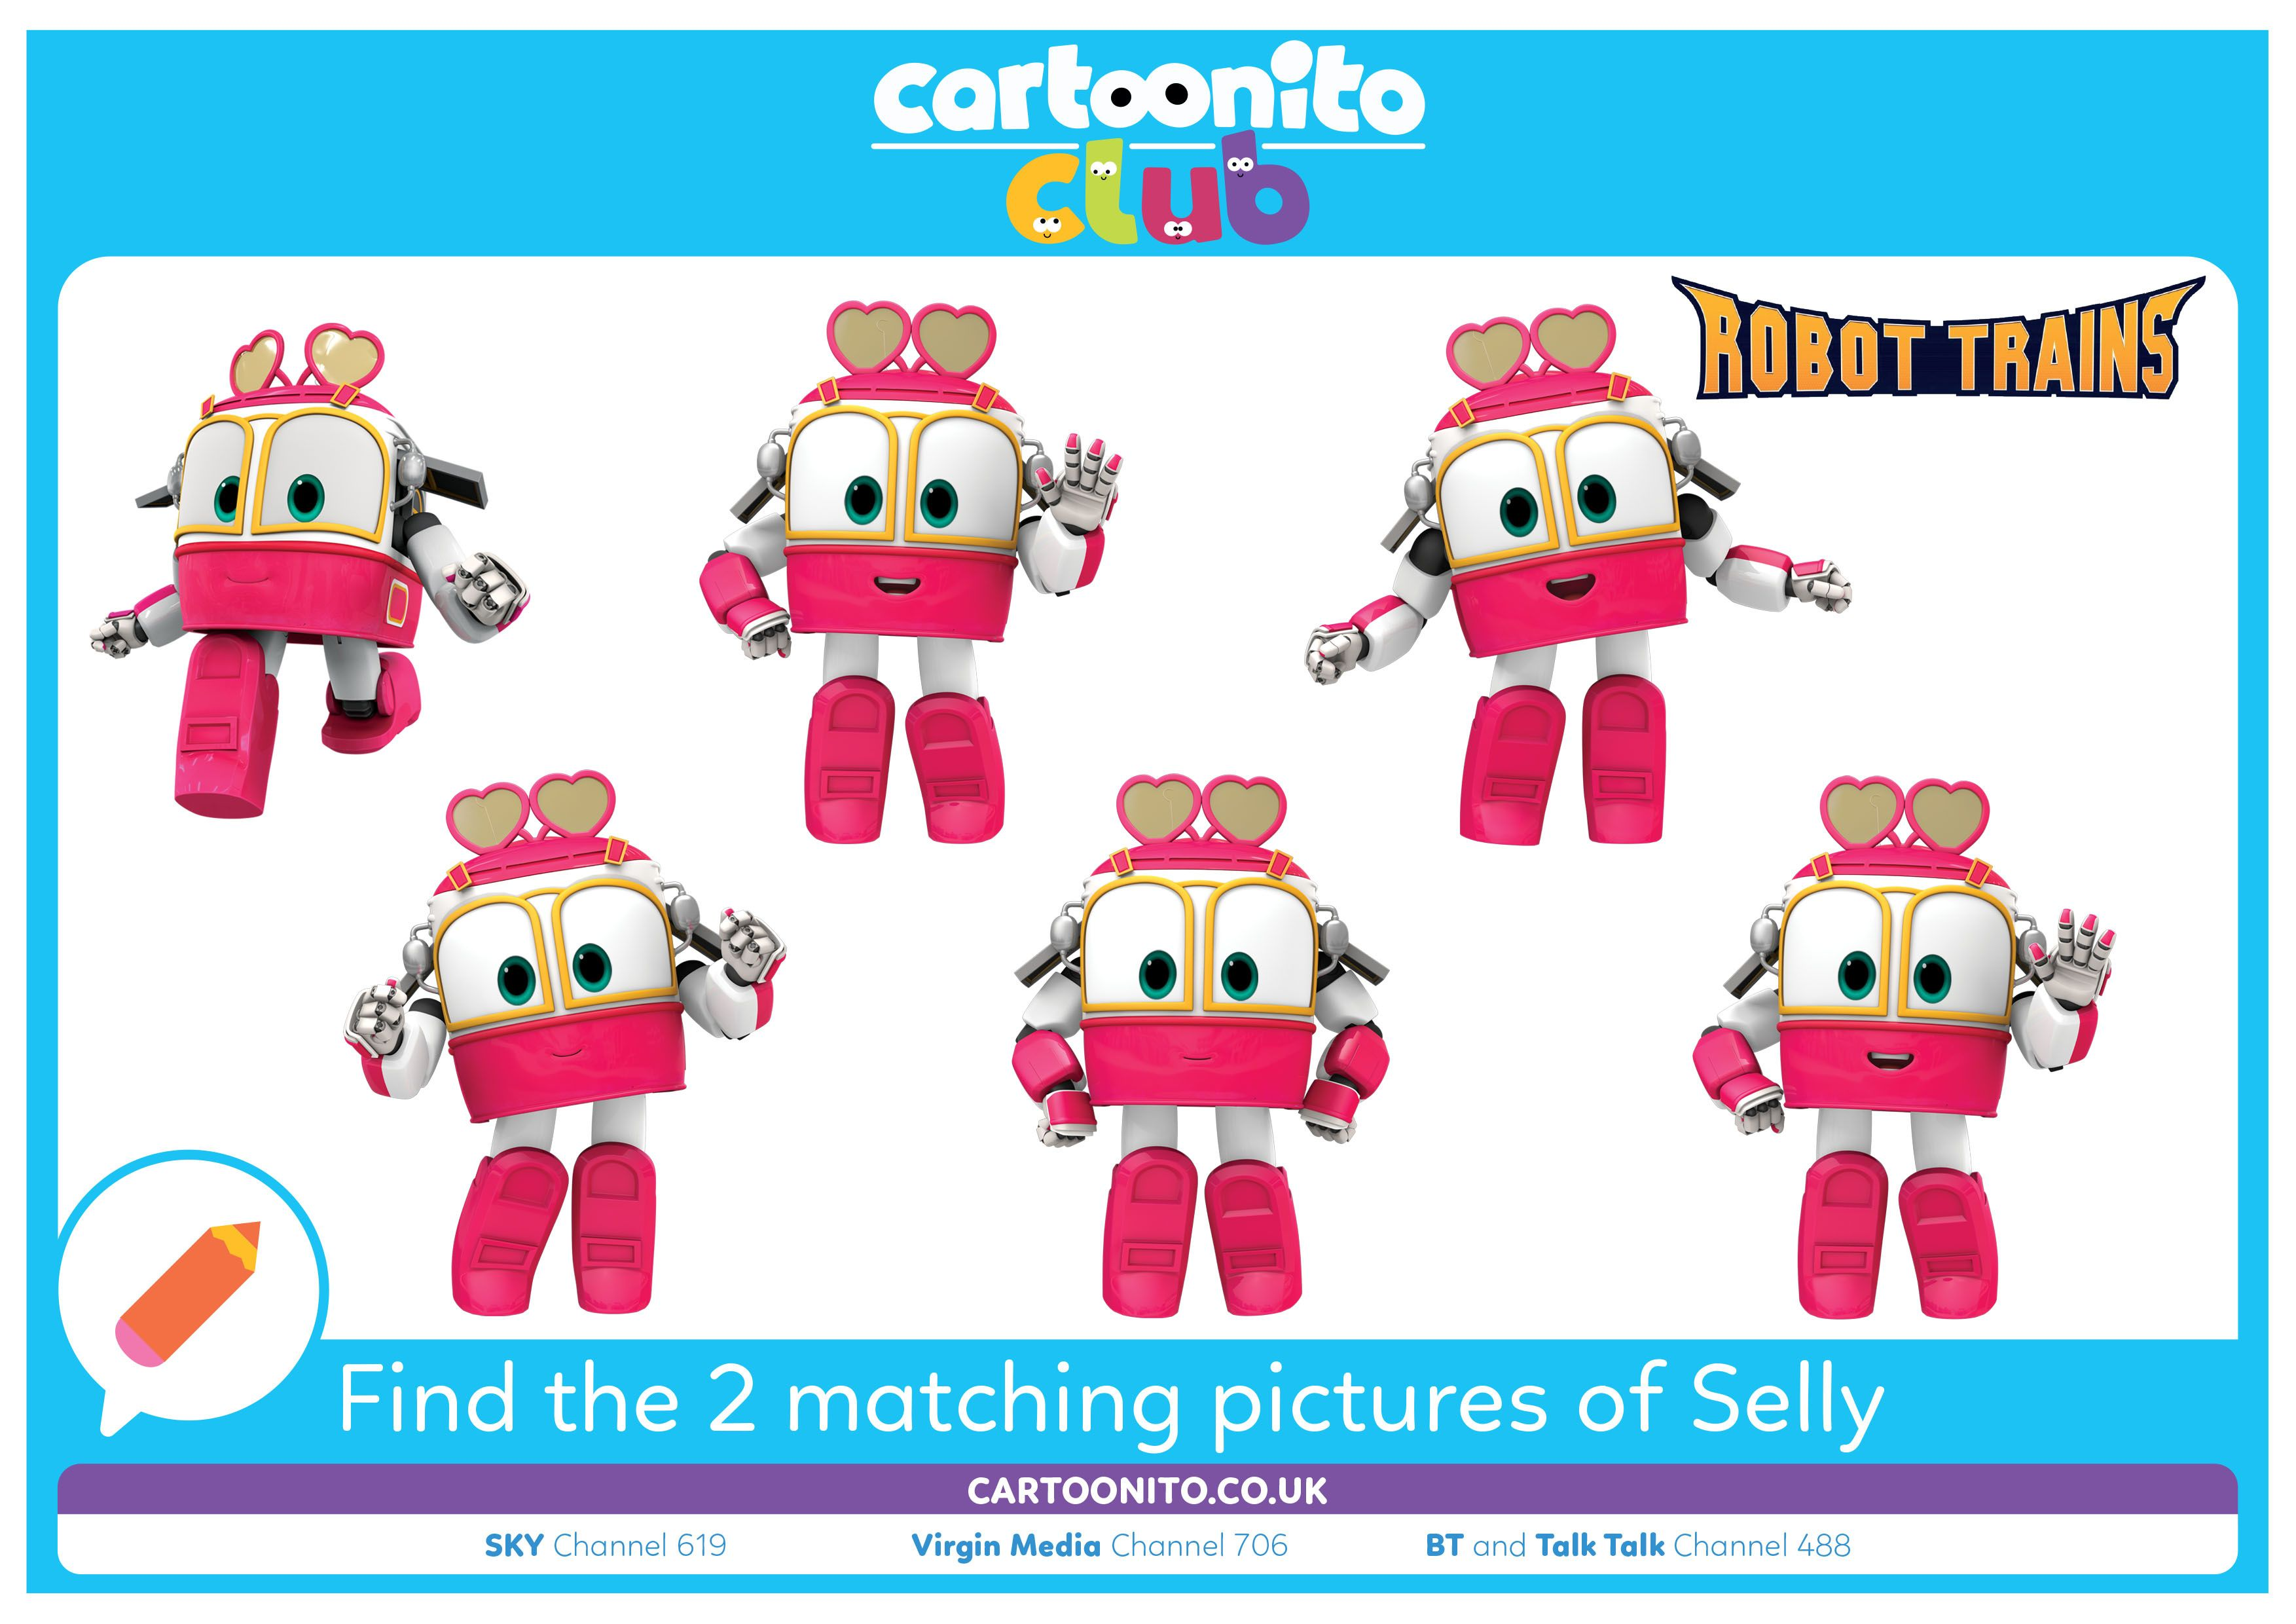 Find the 2 matching pictures of Selly | Robot Trains